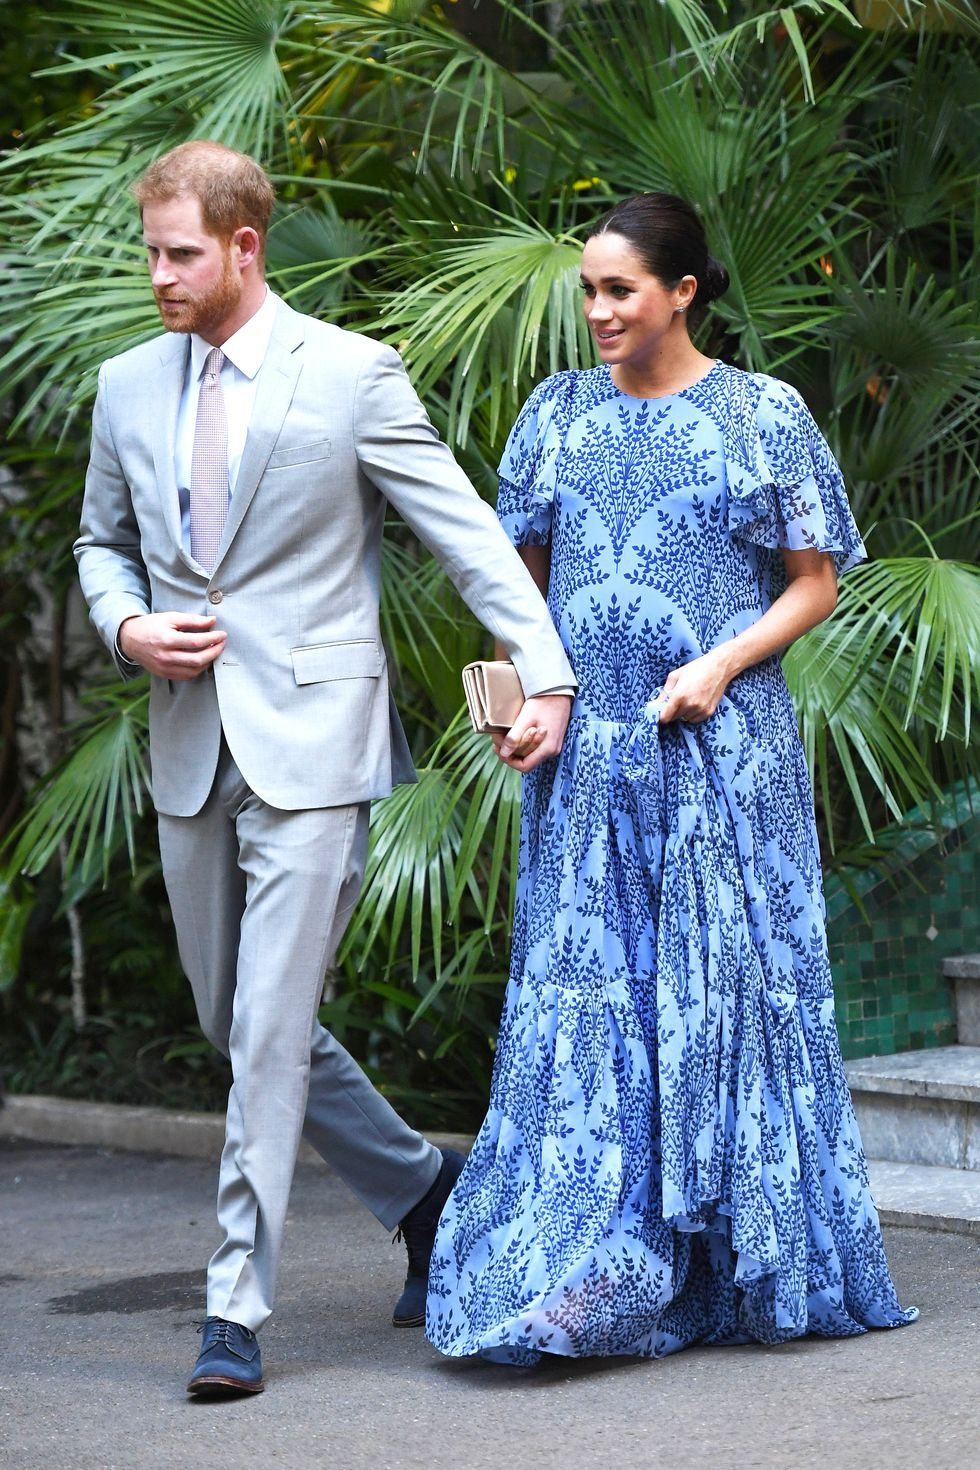 8513fd1cd81c5 Meghan Markle's Best Maternity Outfits - Duchess of Sussex's Chic Pregnant  Style